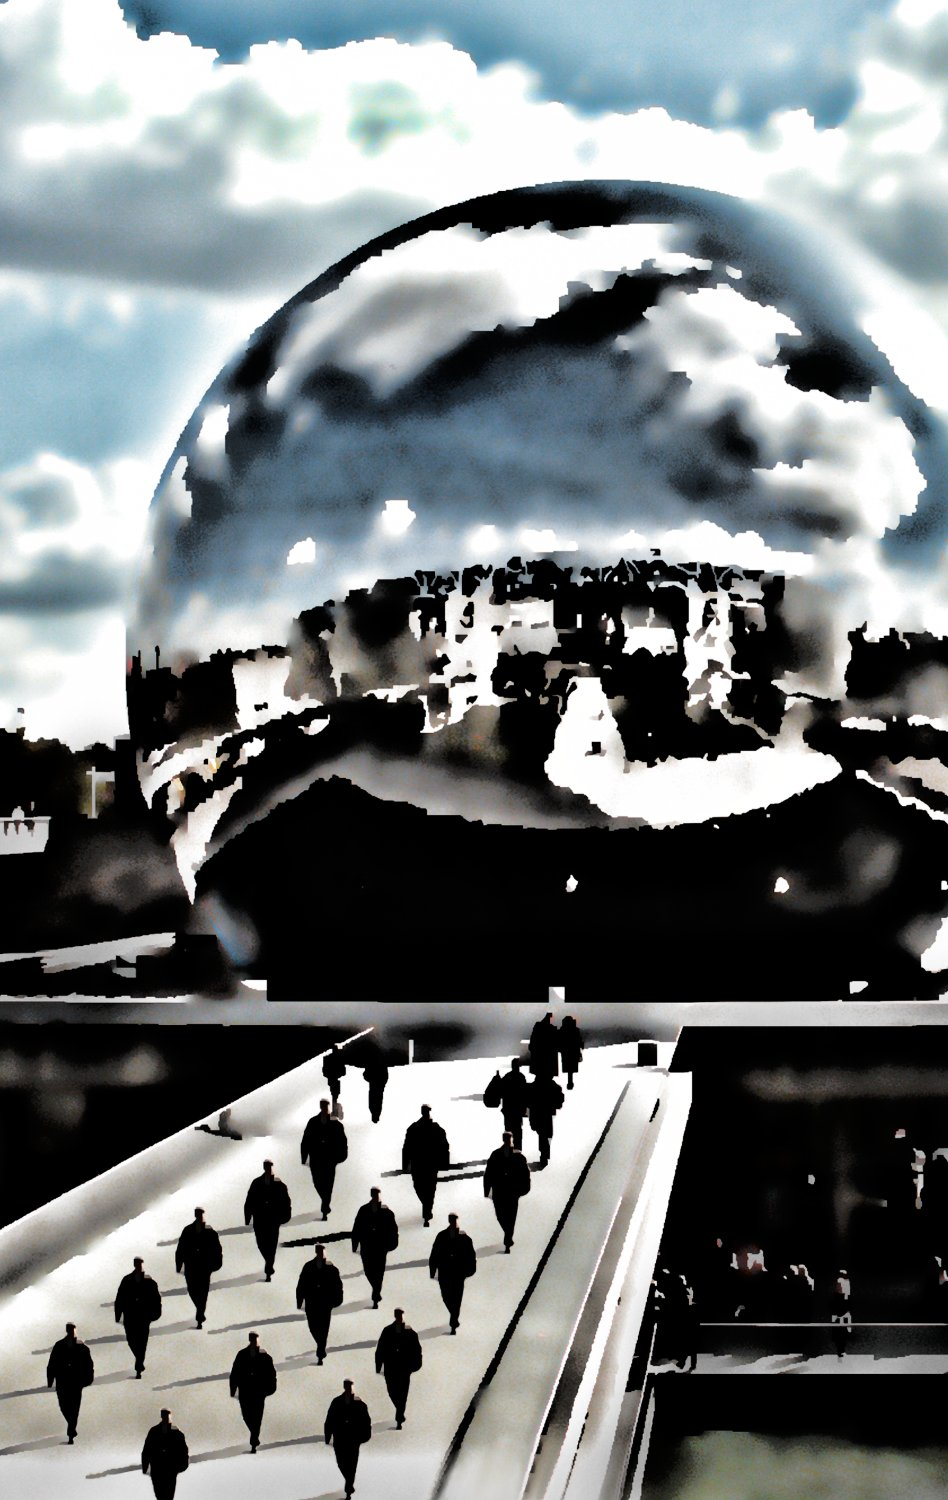 - A tribute to Paris on November 14, 2015 - Paris, eiffel tower - - art  - photography - by Tony Karp